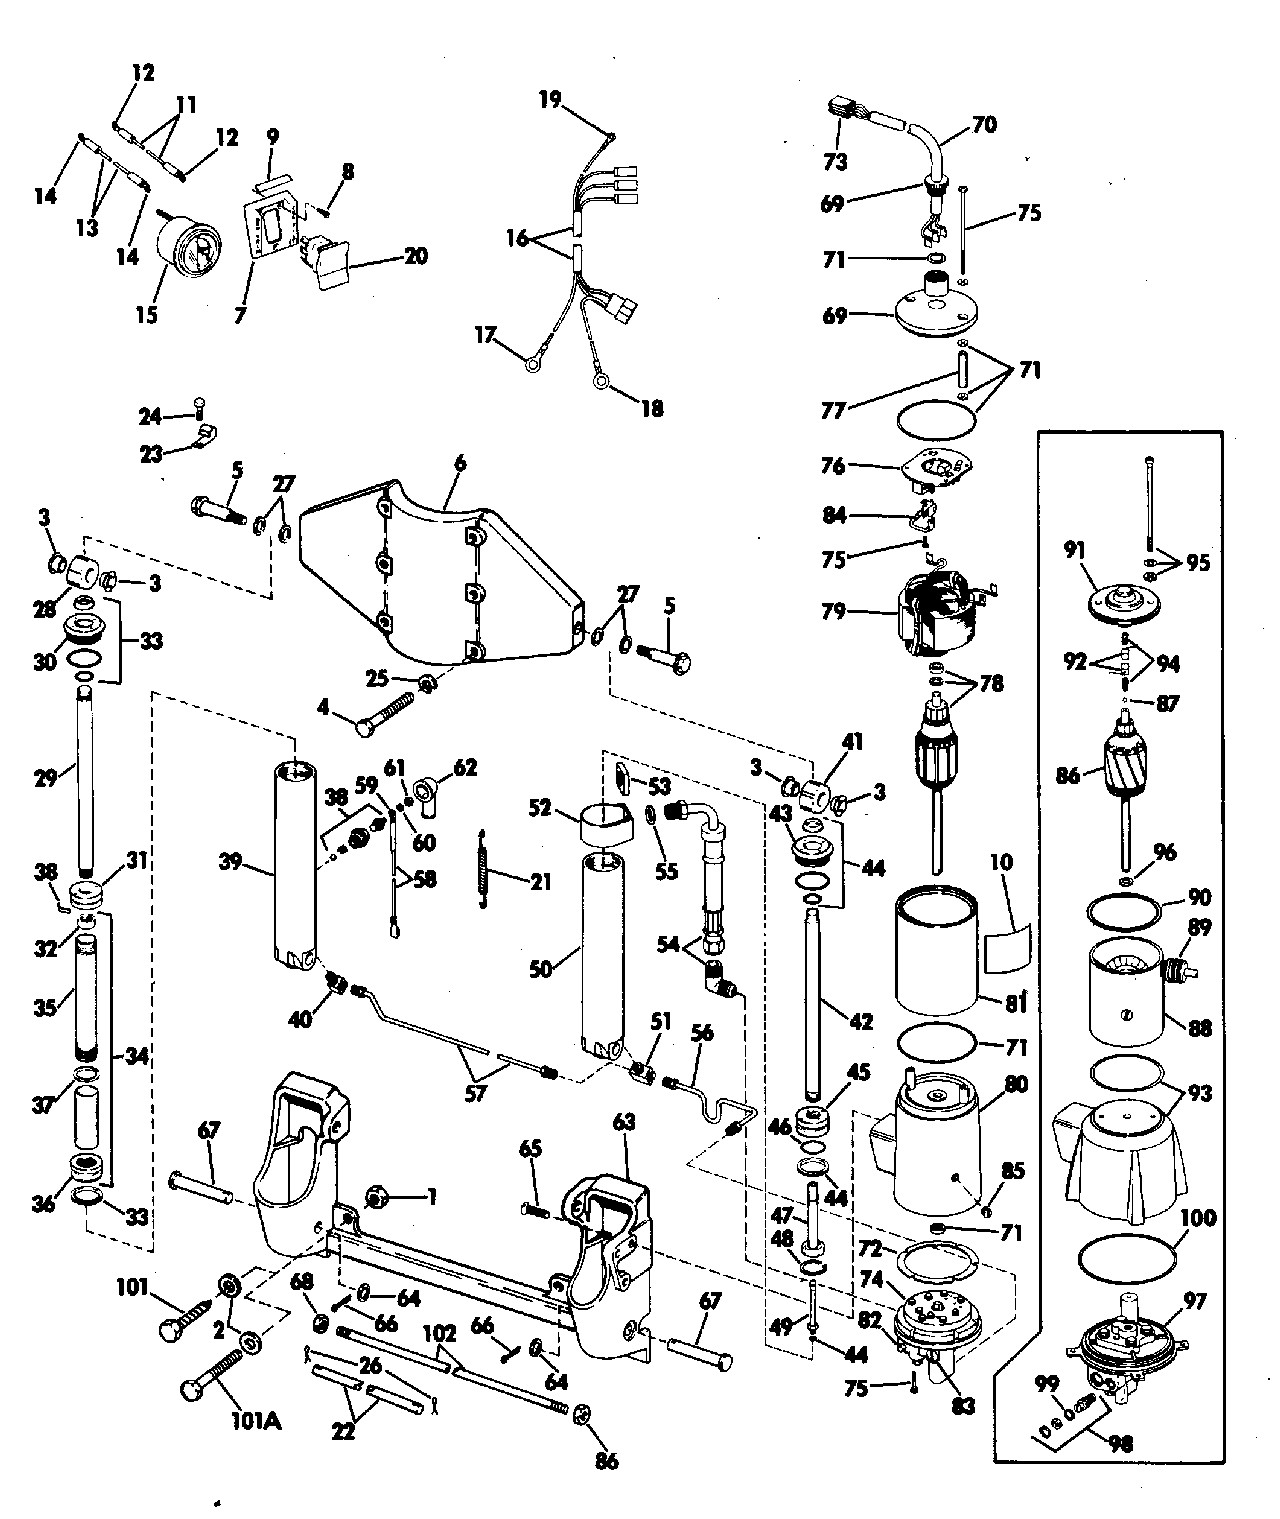 Wiring Diagrams Of 1961 Mercury 6 - Auto Electrical Wiring Diagram on evinrude jet outboards, evinrude g2, evinrude schematics, evinrude tachometer wiring, evinrude troubleshooting guide, evinrude serial number location, 1972 johnson 50 horsepower diagrams, evinrude 40 hp motor wiring, evinrude exhaust, evinrude water pump replacement procedures, evinrude carburetor diagram, evinrude outboard motors, evinrude 40 hp outboard diagrams, evinrude electrical diagrams, evinrude fuel system diagram, evinrude triumph, evinrude starter spins but won't, evinrude online manuals, evinrude service manual, evinrude motor diagrams,